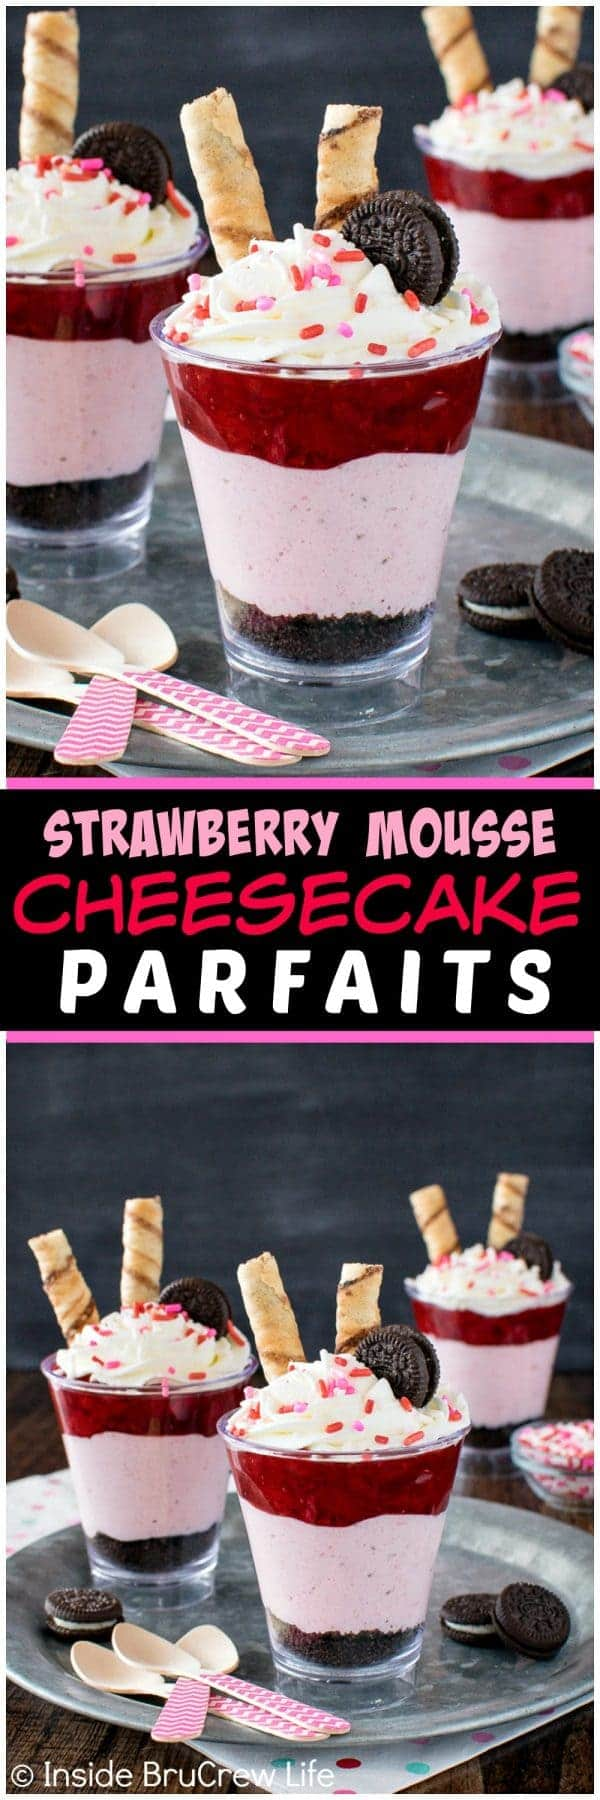 Strawberry Mousse Cheesecake Parfaits by Inside BruCrew Life | Valentine's Day is perfect for sweet treats. Check out these 7 easy Valentine's Day Desserts.  You'll get easy dessert recipes that you can make for your loved ones on Valentine's Day.  Valentine's day dessert recipes are festive and can be super easy. #ValentinesDayDesserts #ValentinesDay #desserts #dessertgifts #HWS #healthywealthyskinny